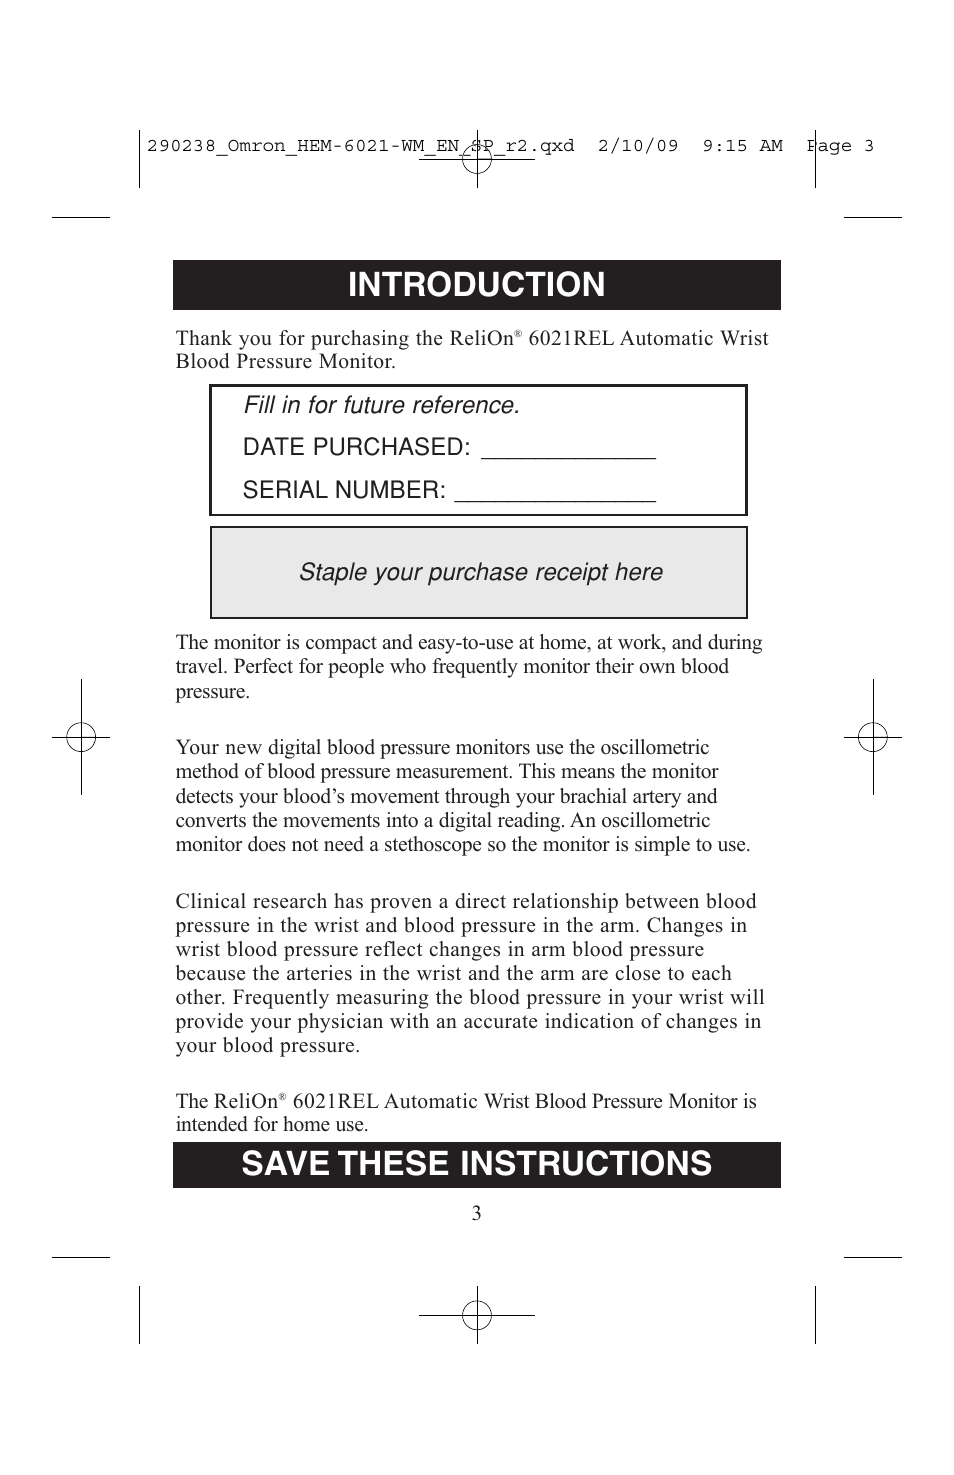 Introduction Save These Instructions Before Using The Monitor